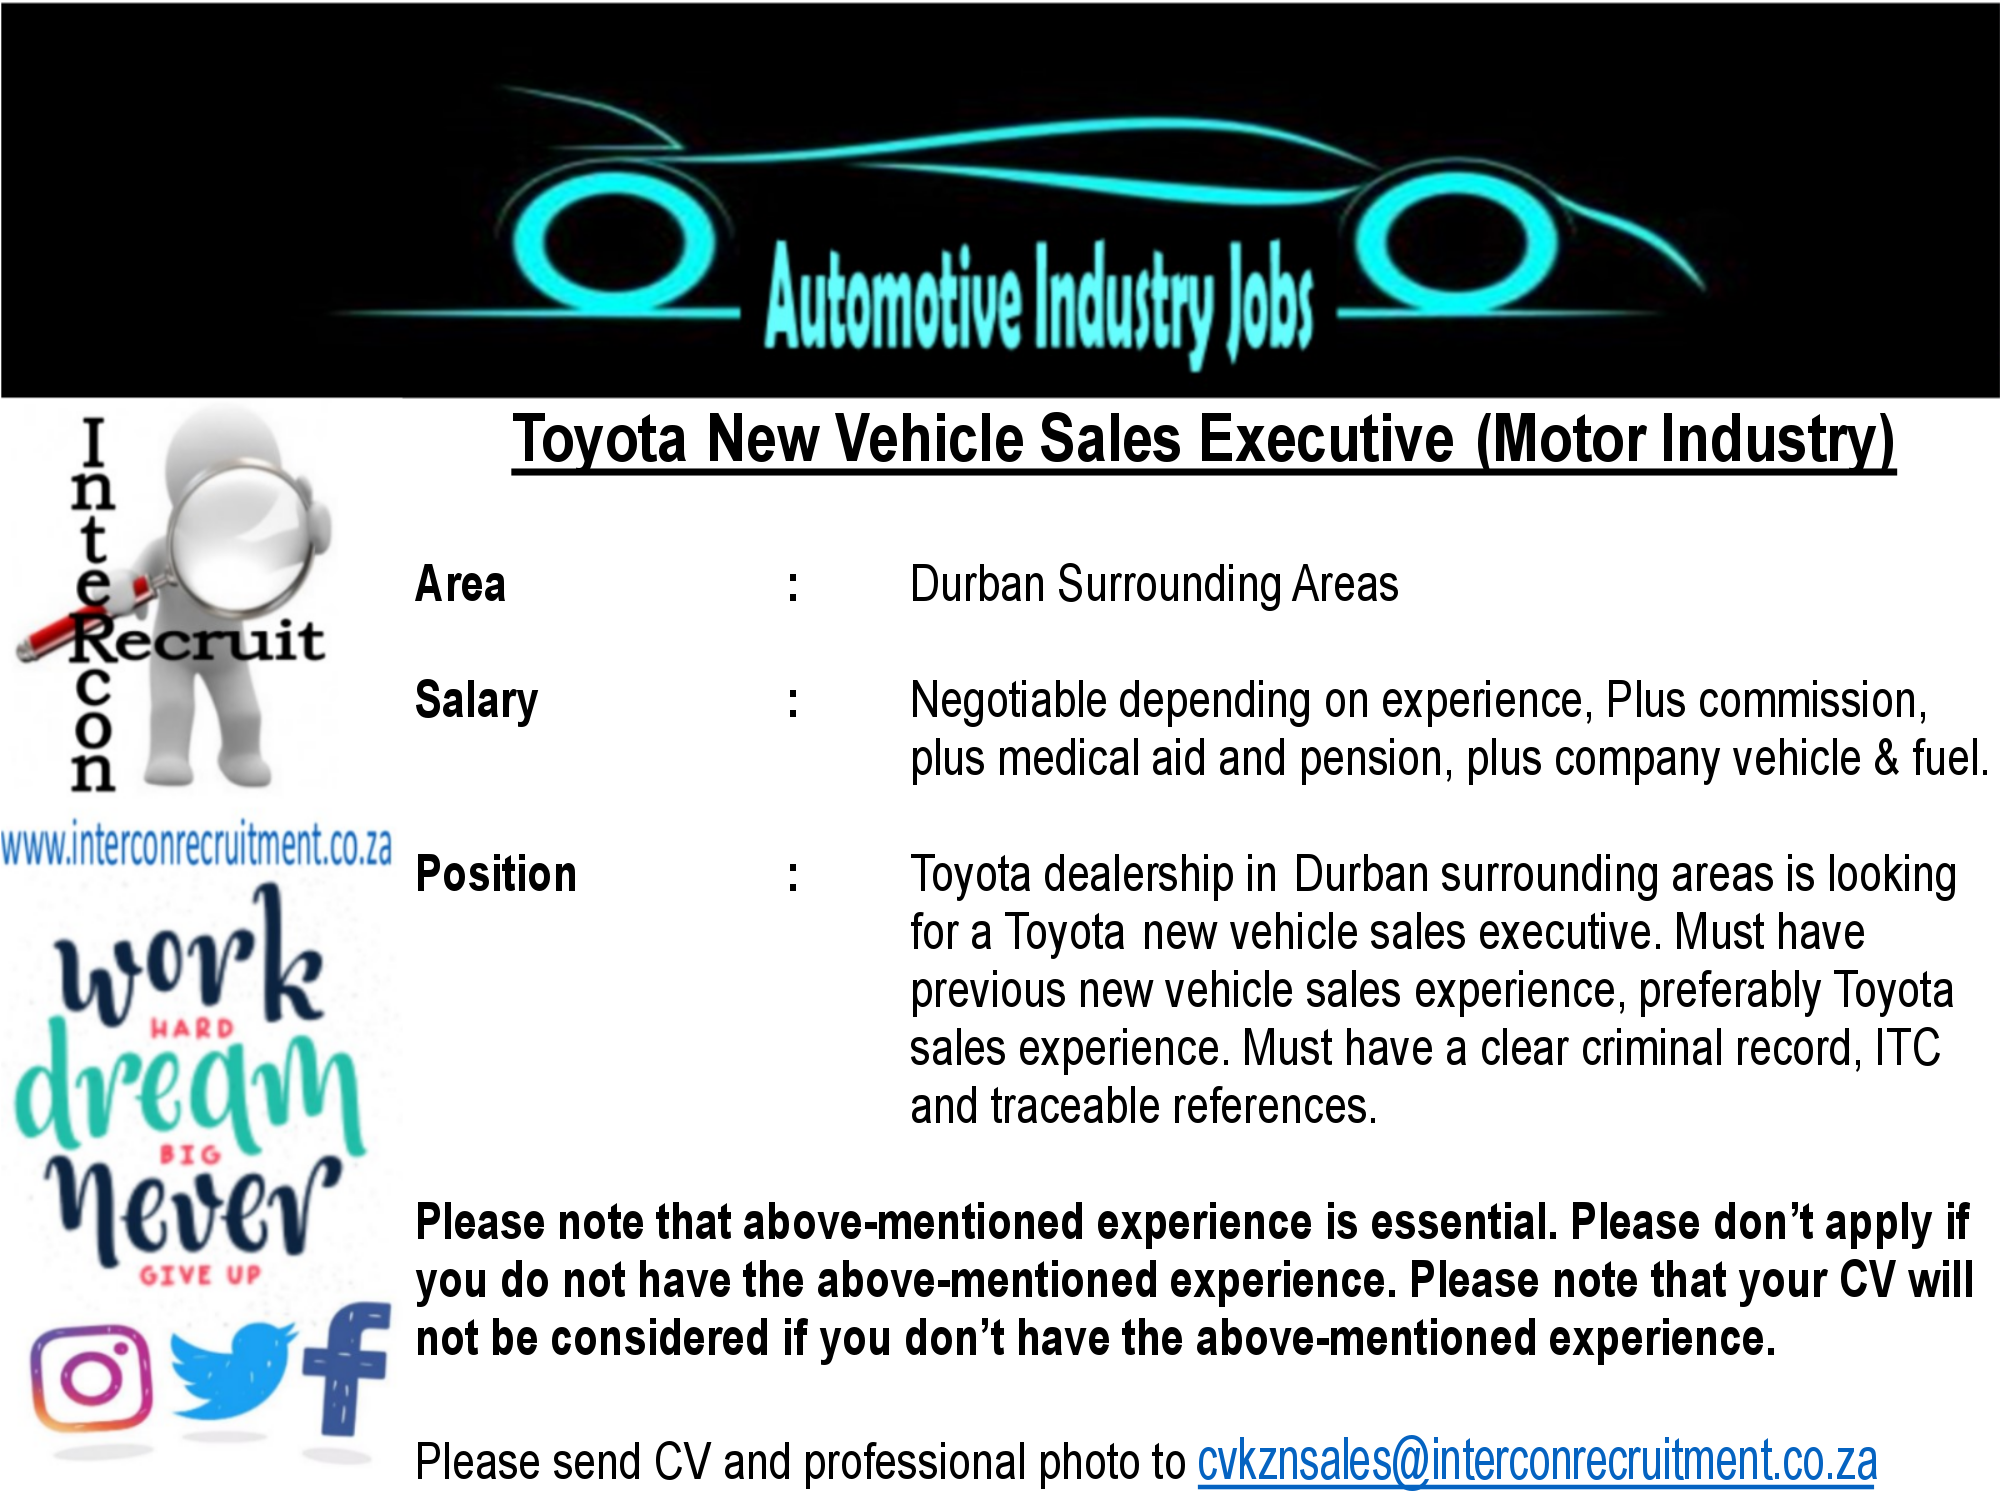 Toyota New Vehicle Sales Executive (Motor Industry